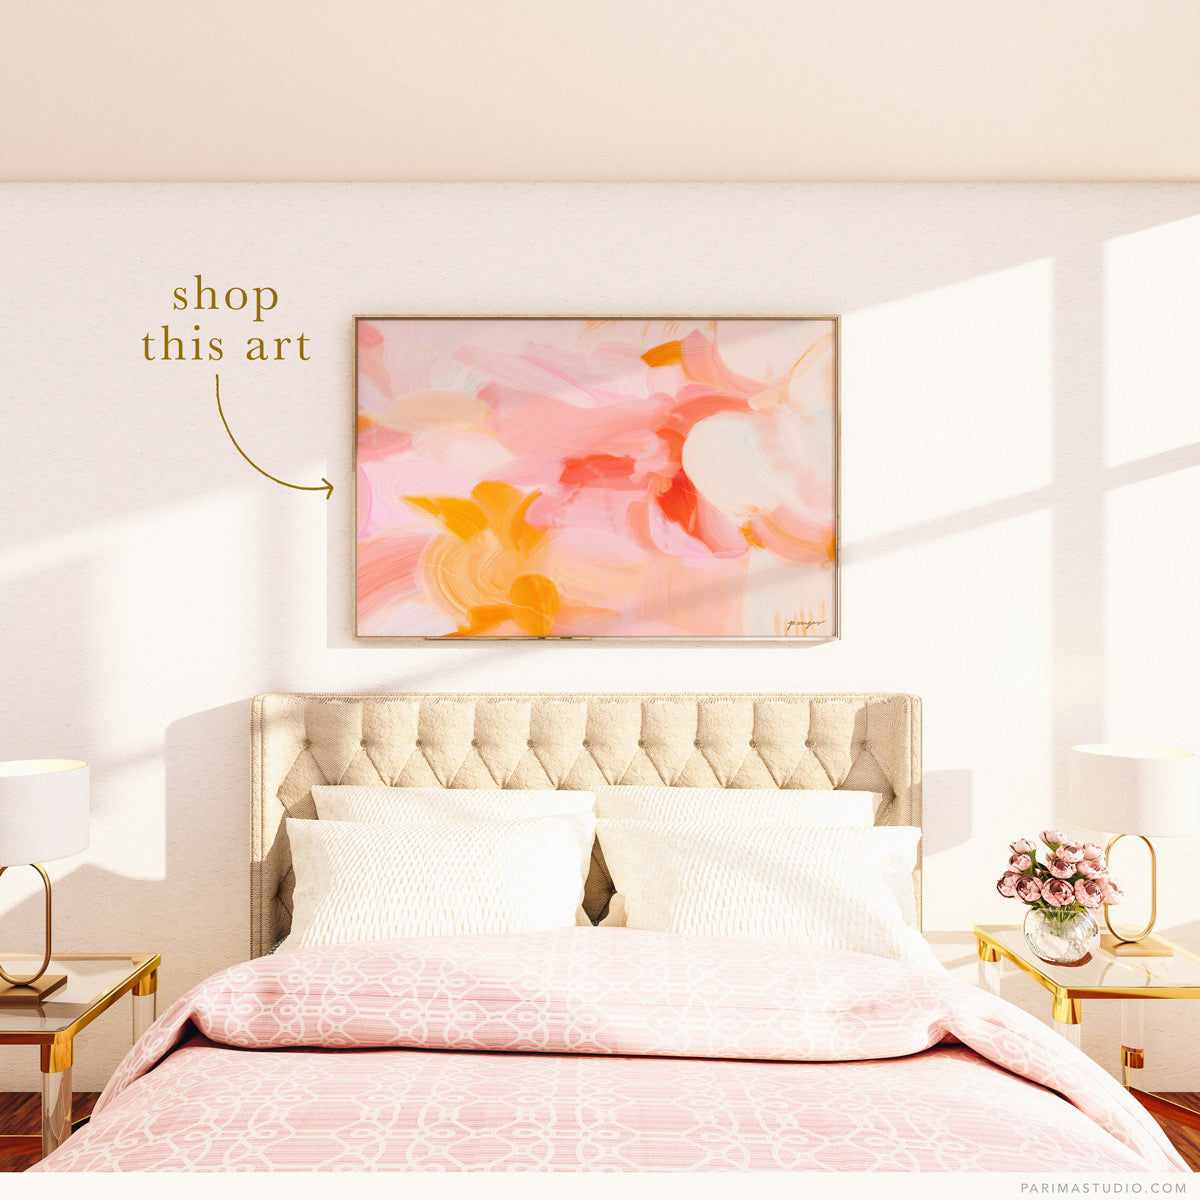 Large landscape pink and yellow abstract wall art for over the bed via Parima Studio